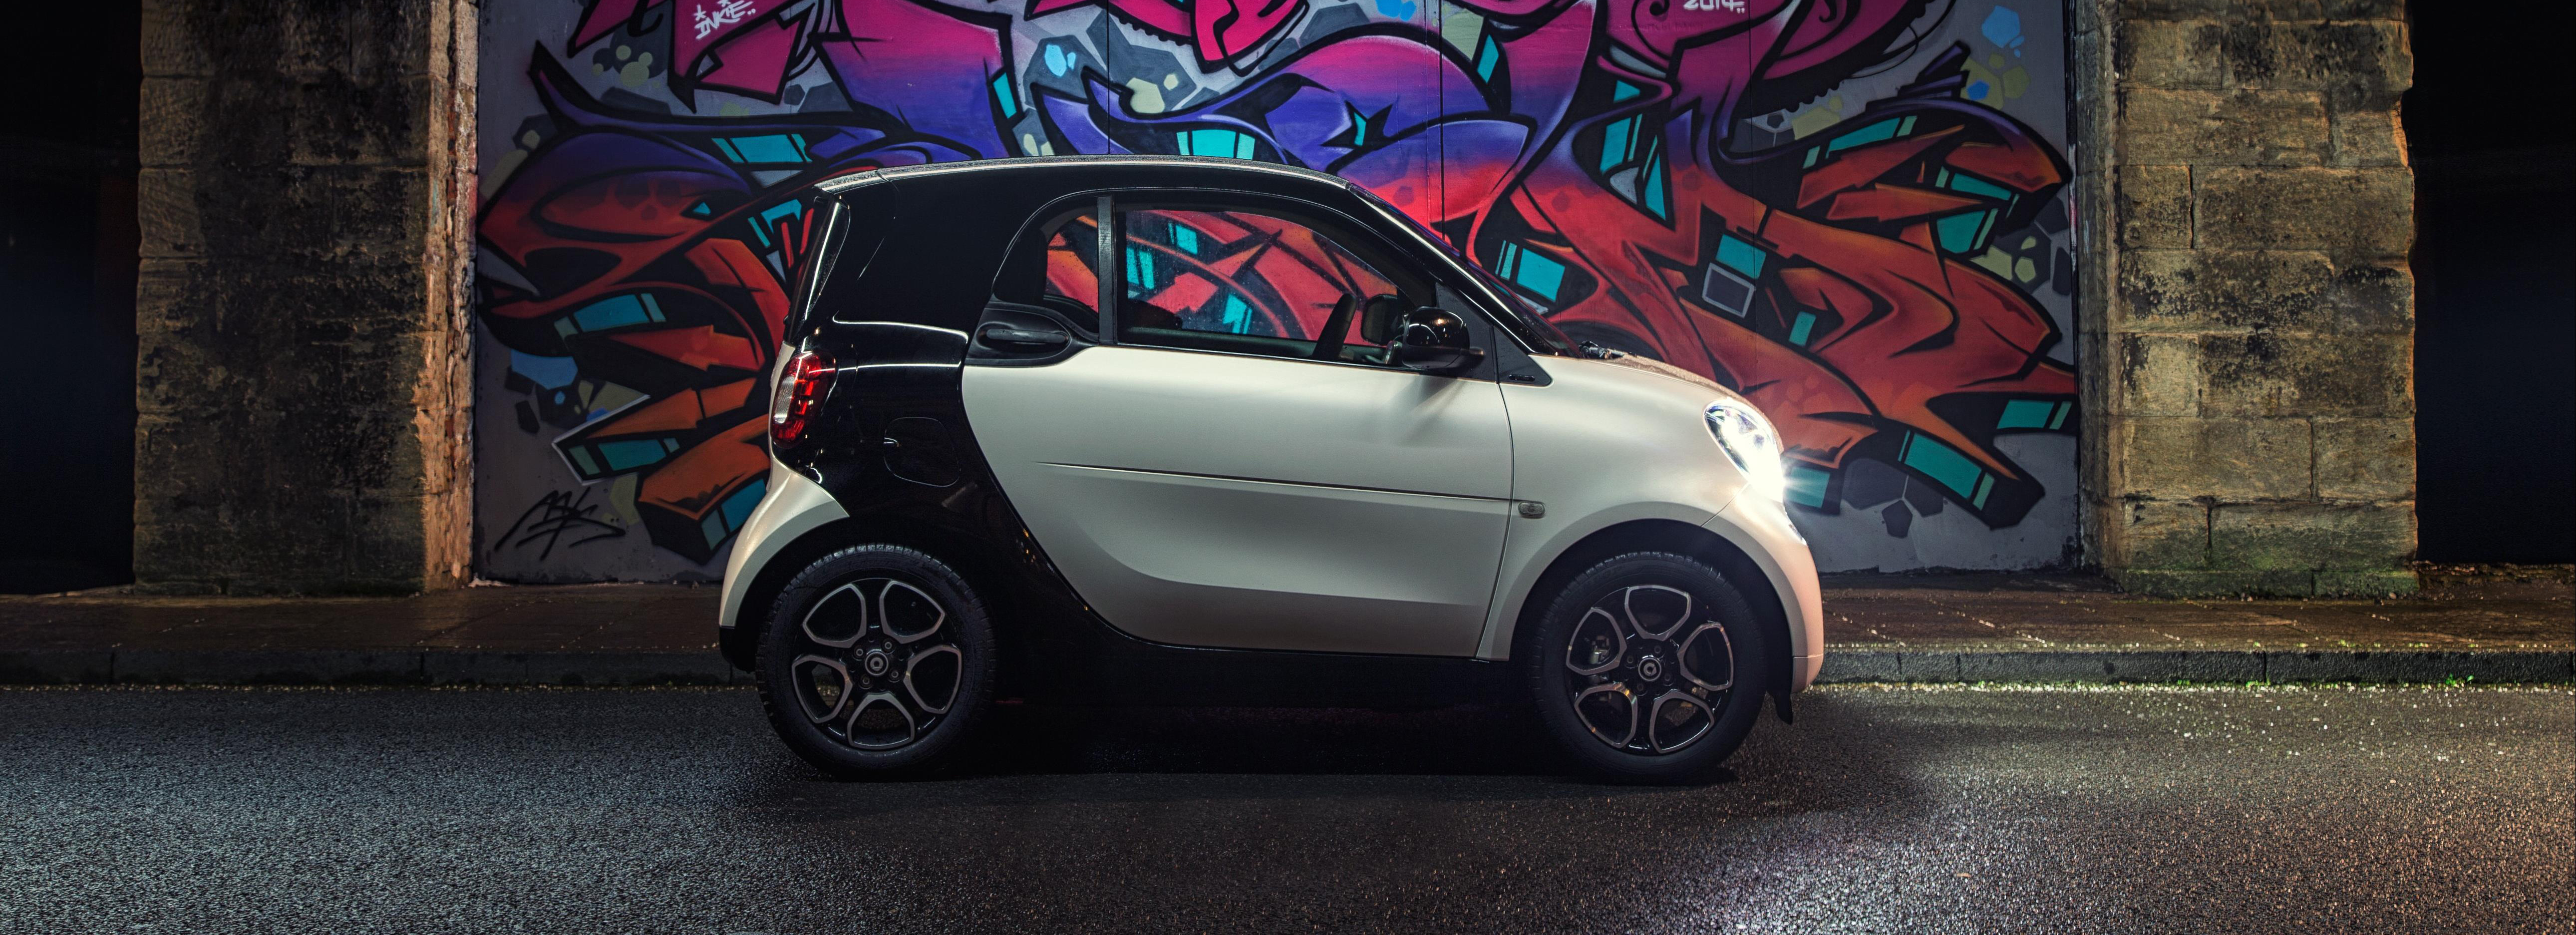 2019/20 Smart ForTwo Deals